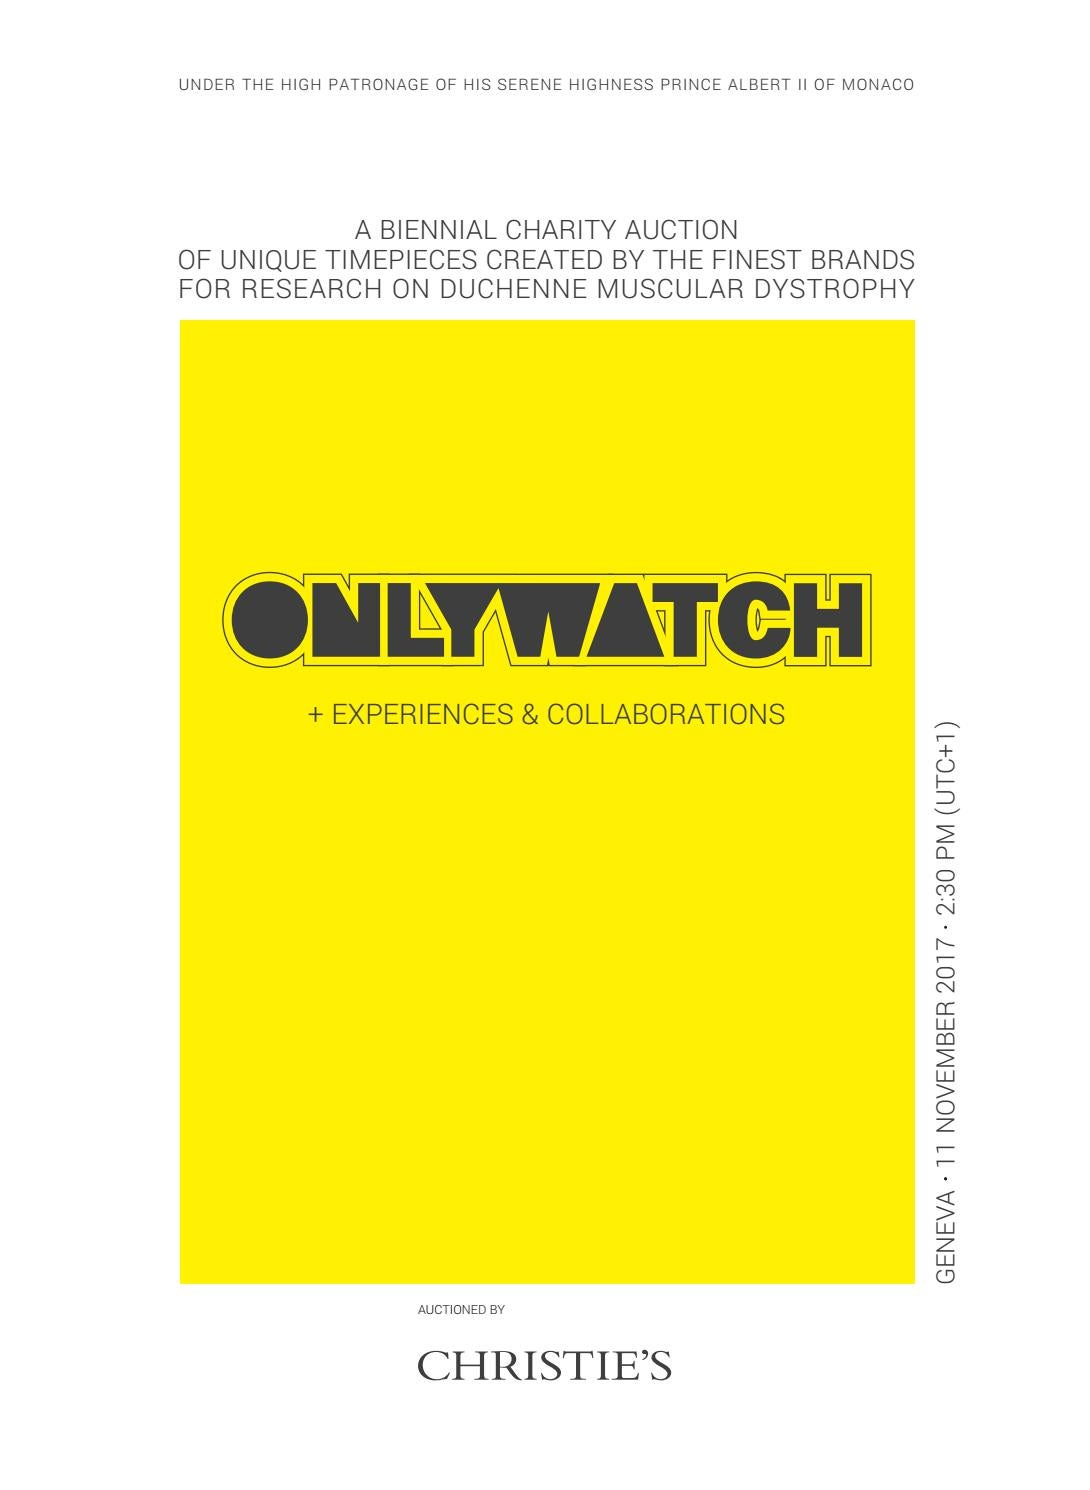 b0e9cb06b2a ONLY WATCH 2017  the official catalogue by monacoyachtshow - issuu